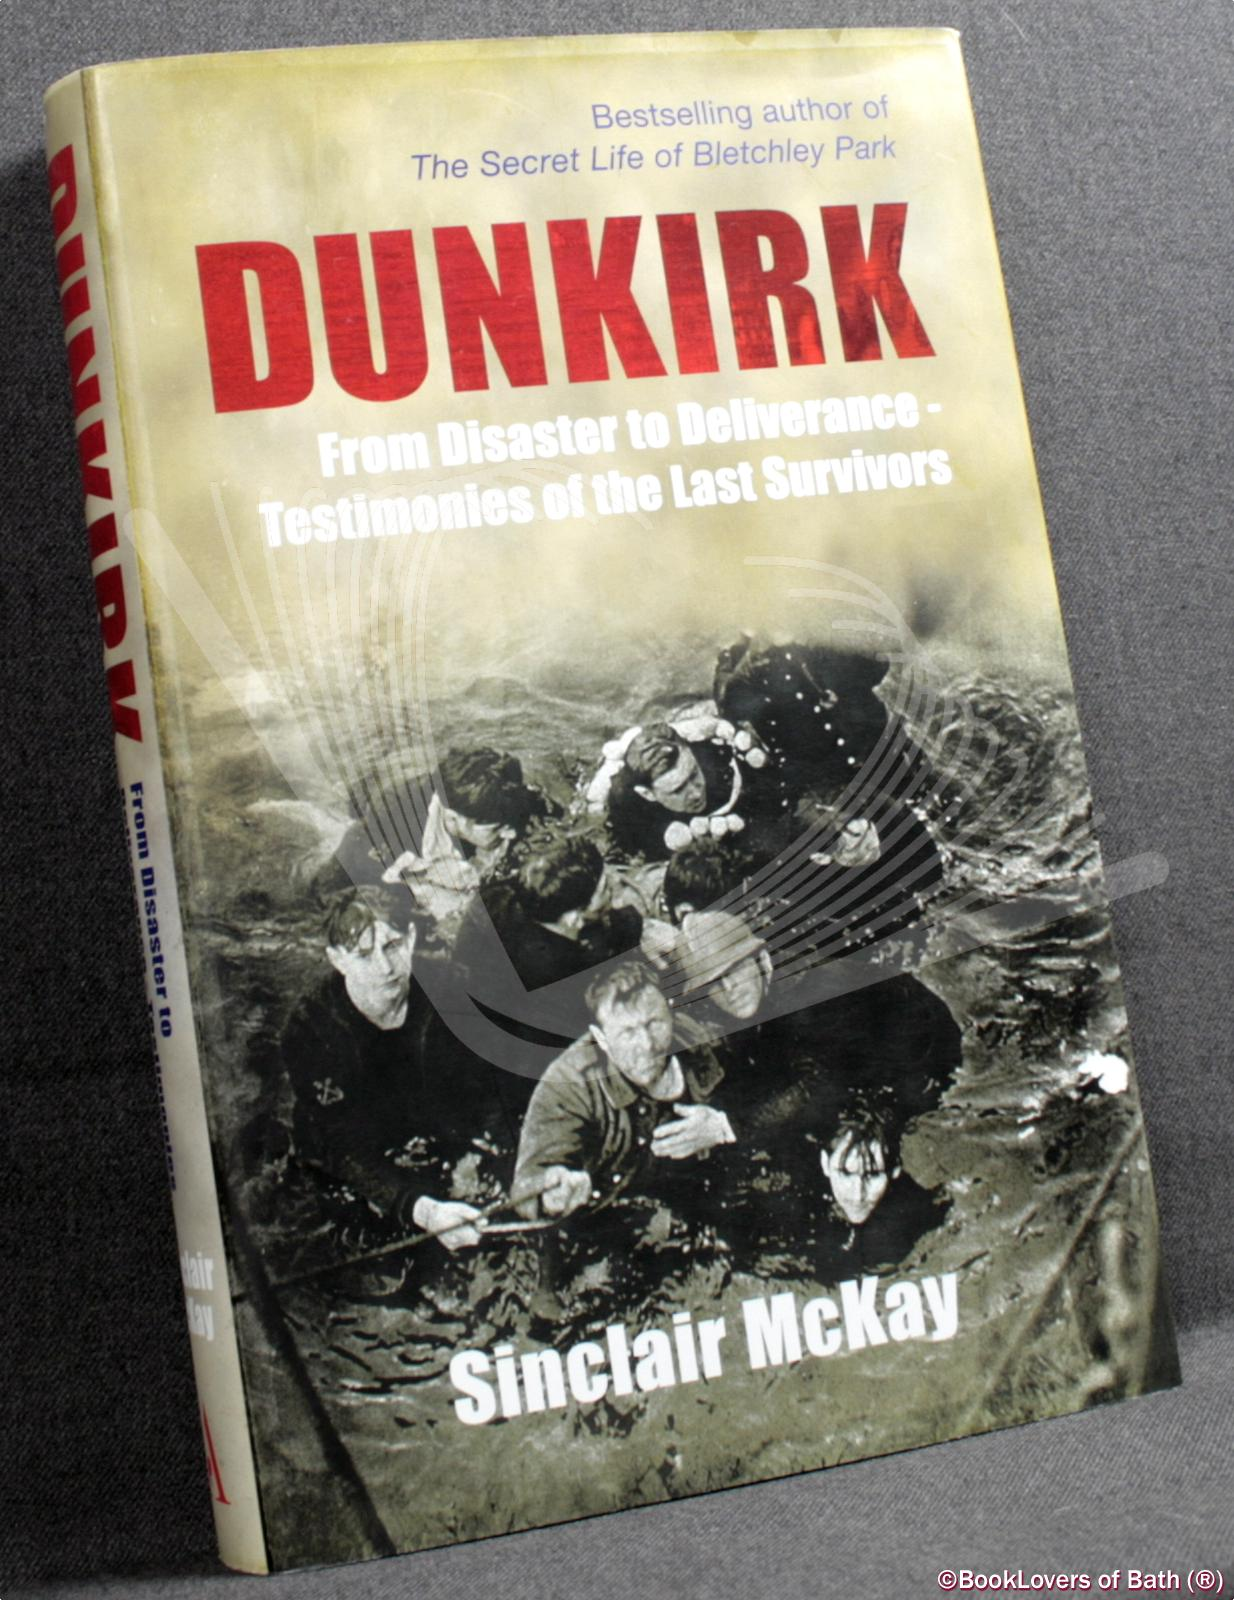 Dunkirk: From Disaster to Deliverance - Testimonies of the Last Survivors - Sinclair Mckay